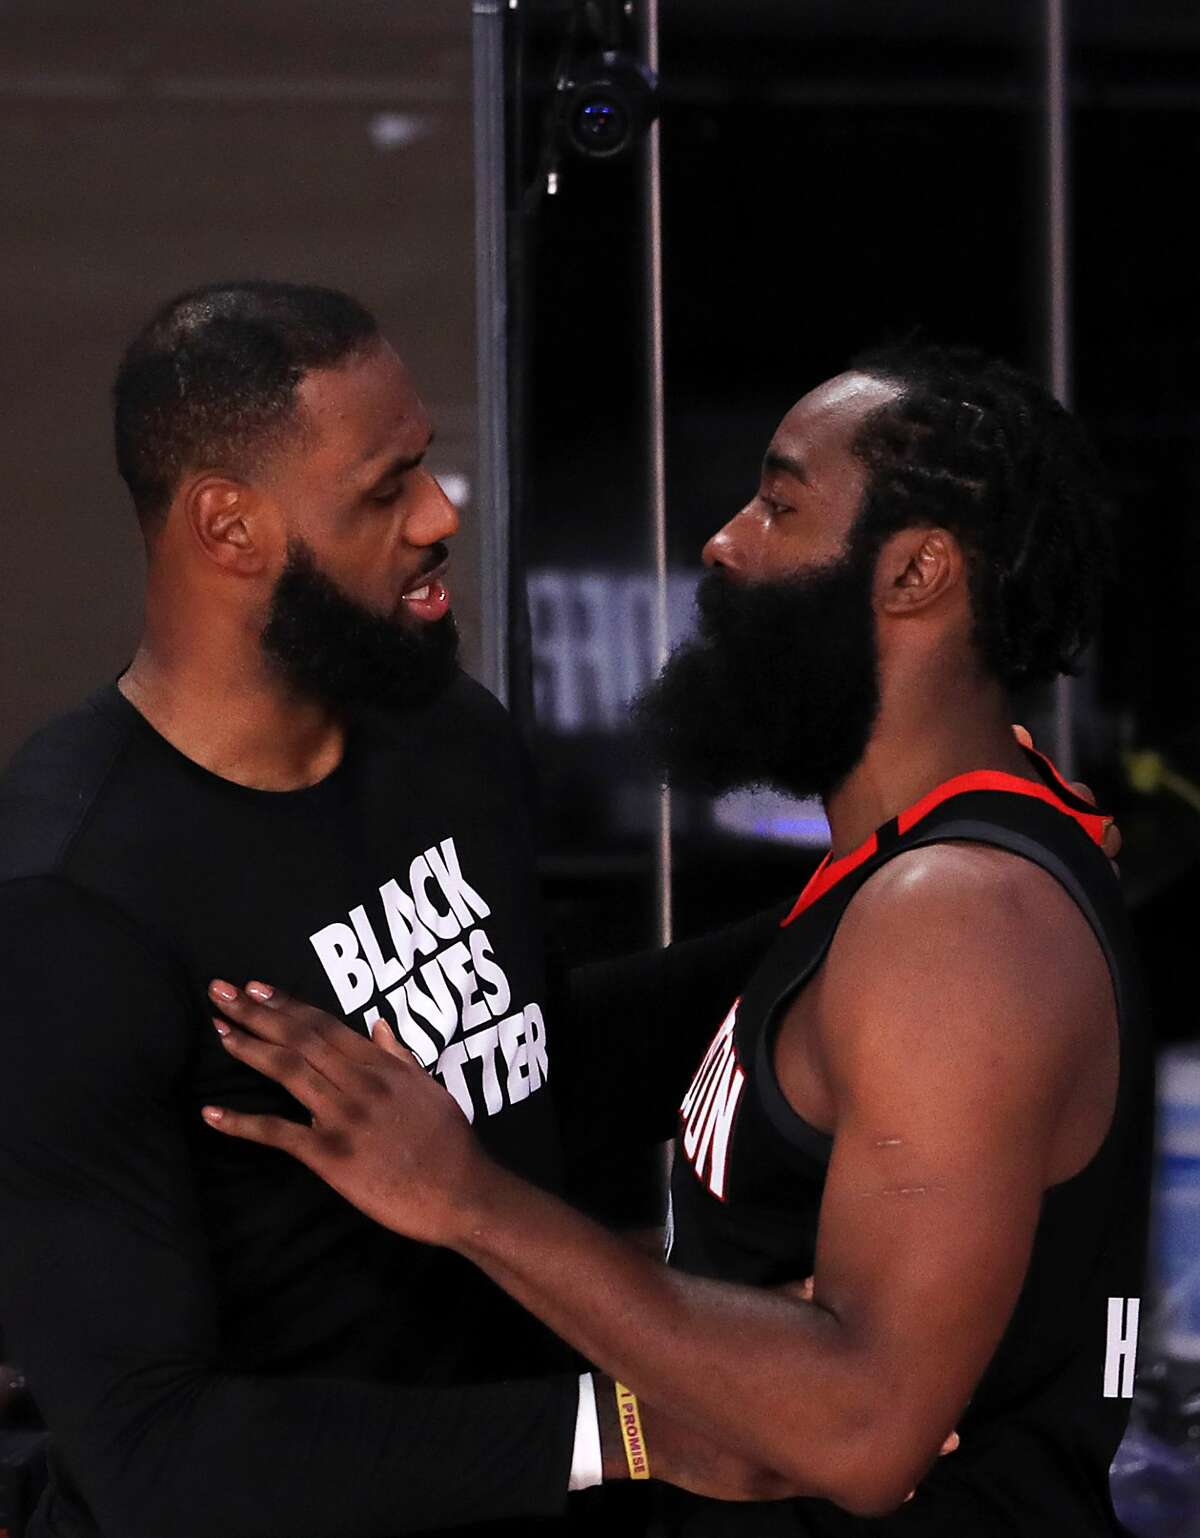 LAKE BUENA VISTA, FLORIDA - SEPTEMBER 12: LeBron James #23 of the Los Angeles Lakers and James Harden #13 of the Houston Rockets react after the Los Angeles Lakers win during the fourth quarter in Game Five of the Western Conference Second Round during the 2020 NBA Playoffs at AdventHealth Arena at the ESPN Wide World Of Sports Complex on September 12, 2020 in Lake Buena Vista, Florida. NOTE TO USER: User expressly acknowledges and agrees that, by downloading and or using this photograph, User is consenting to the terms and conditions of the Getty Images License Agreement. (Photo by Michael Reaves/Getty Images)